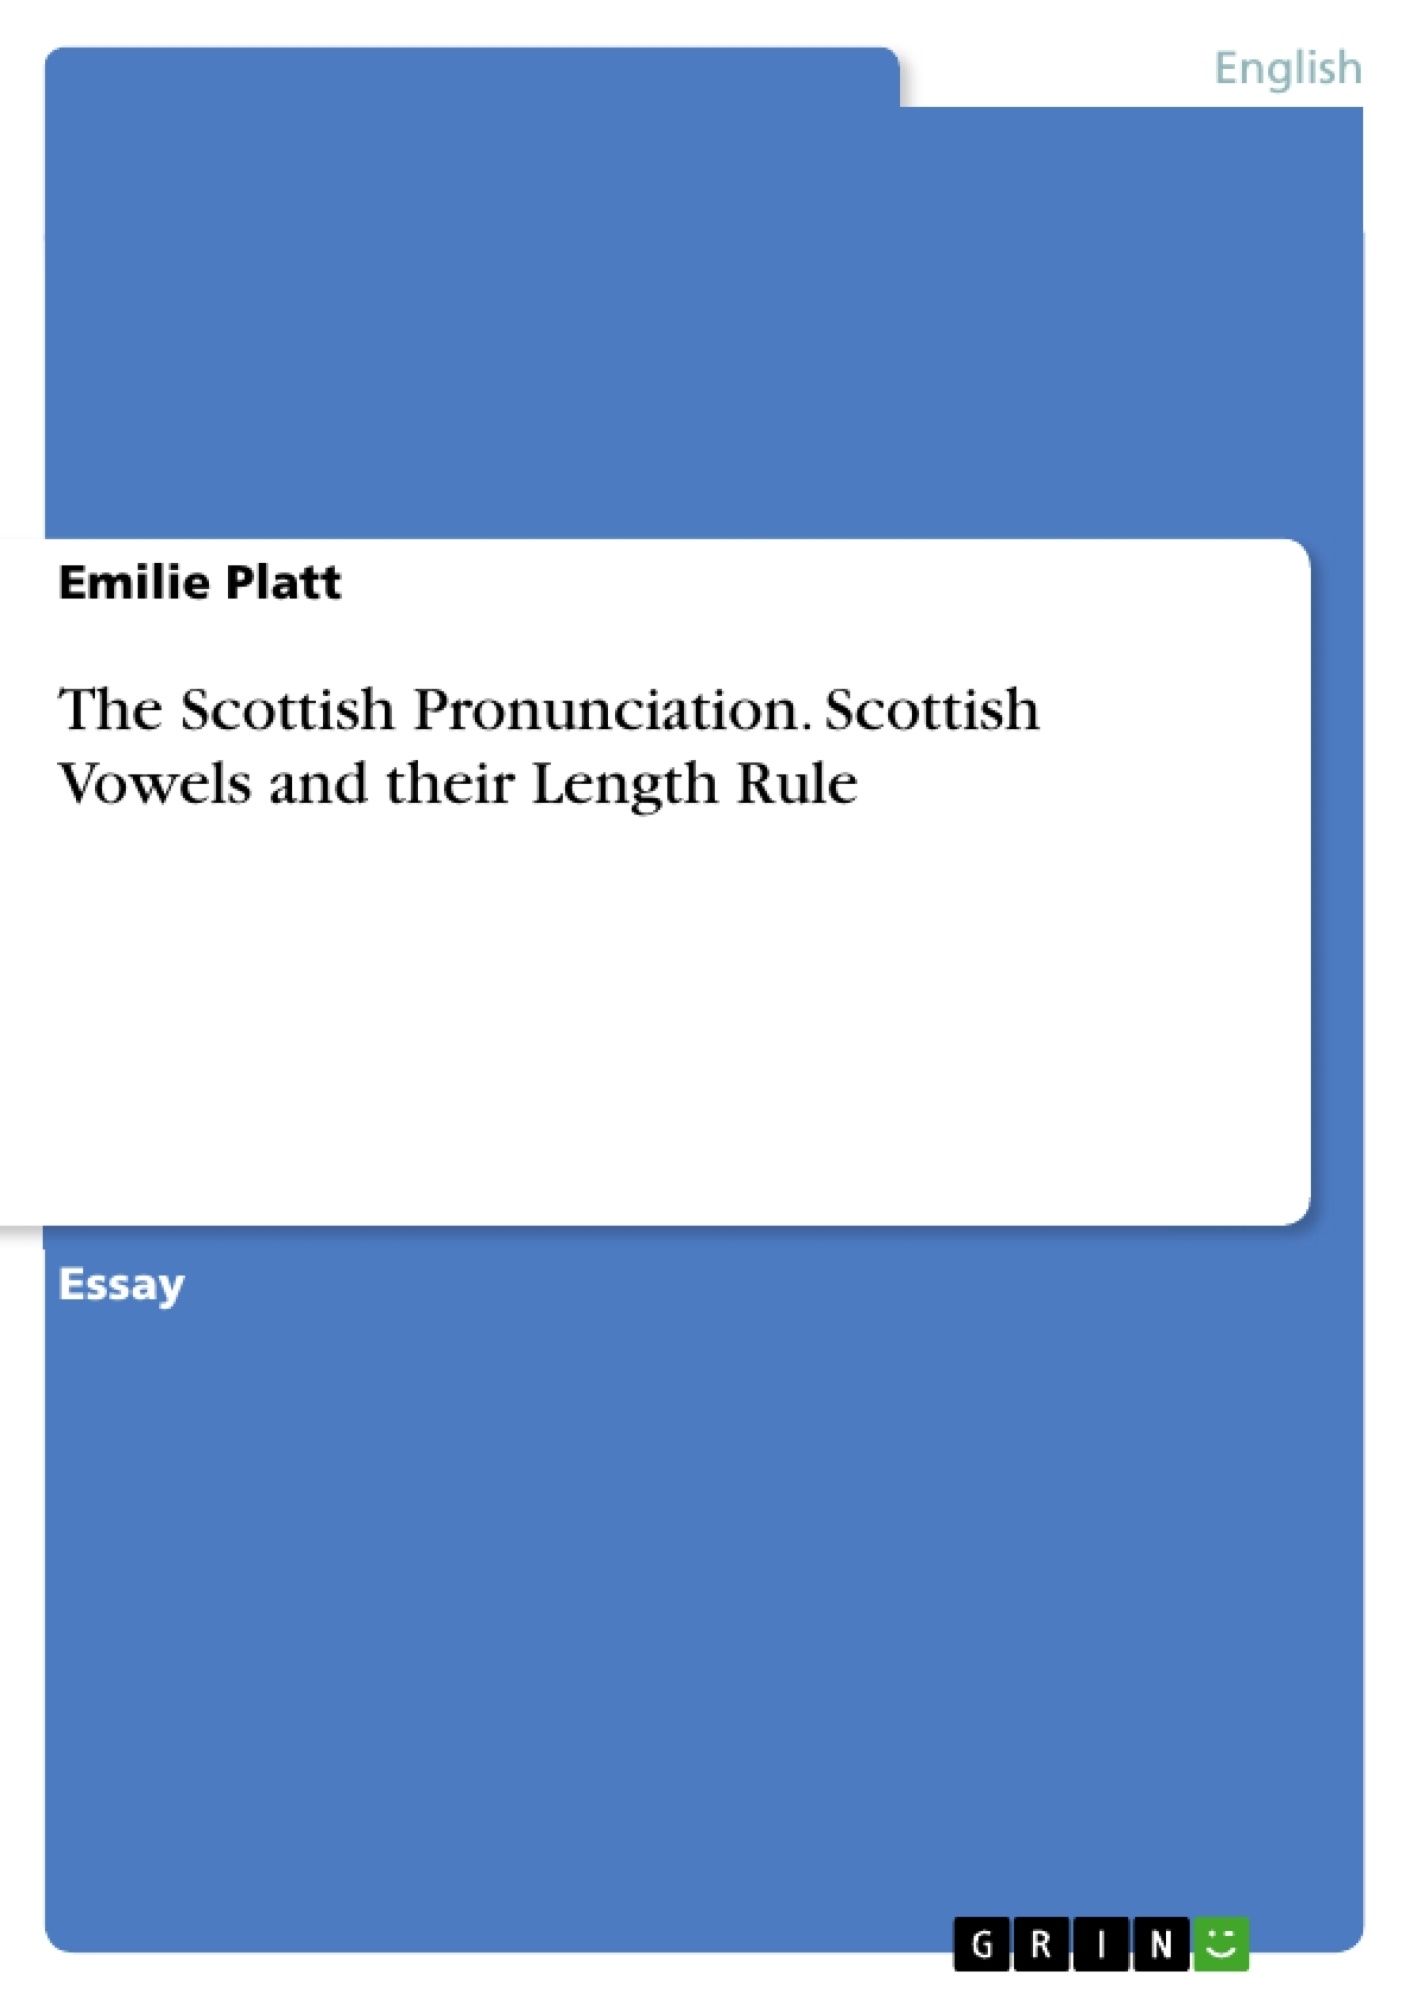 Title: The Scottish Pronunciation. Scottish Vowels and their Length Rule